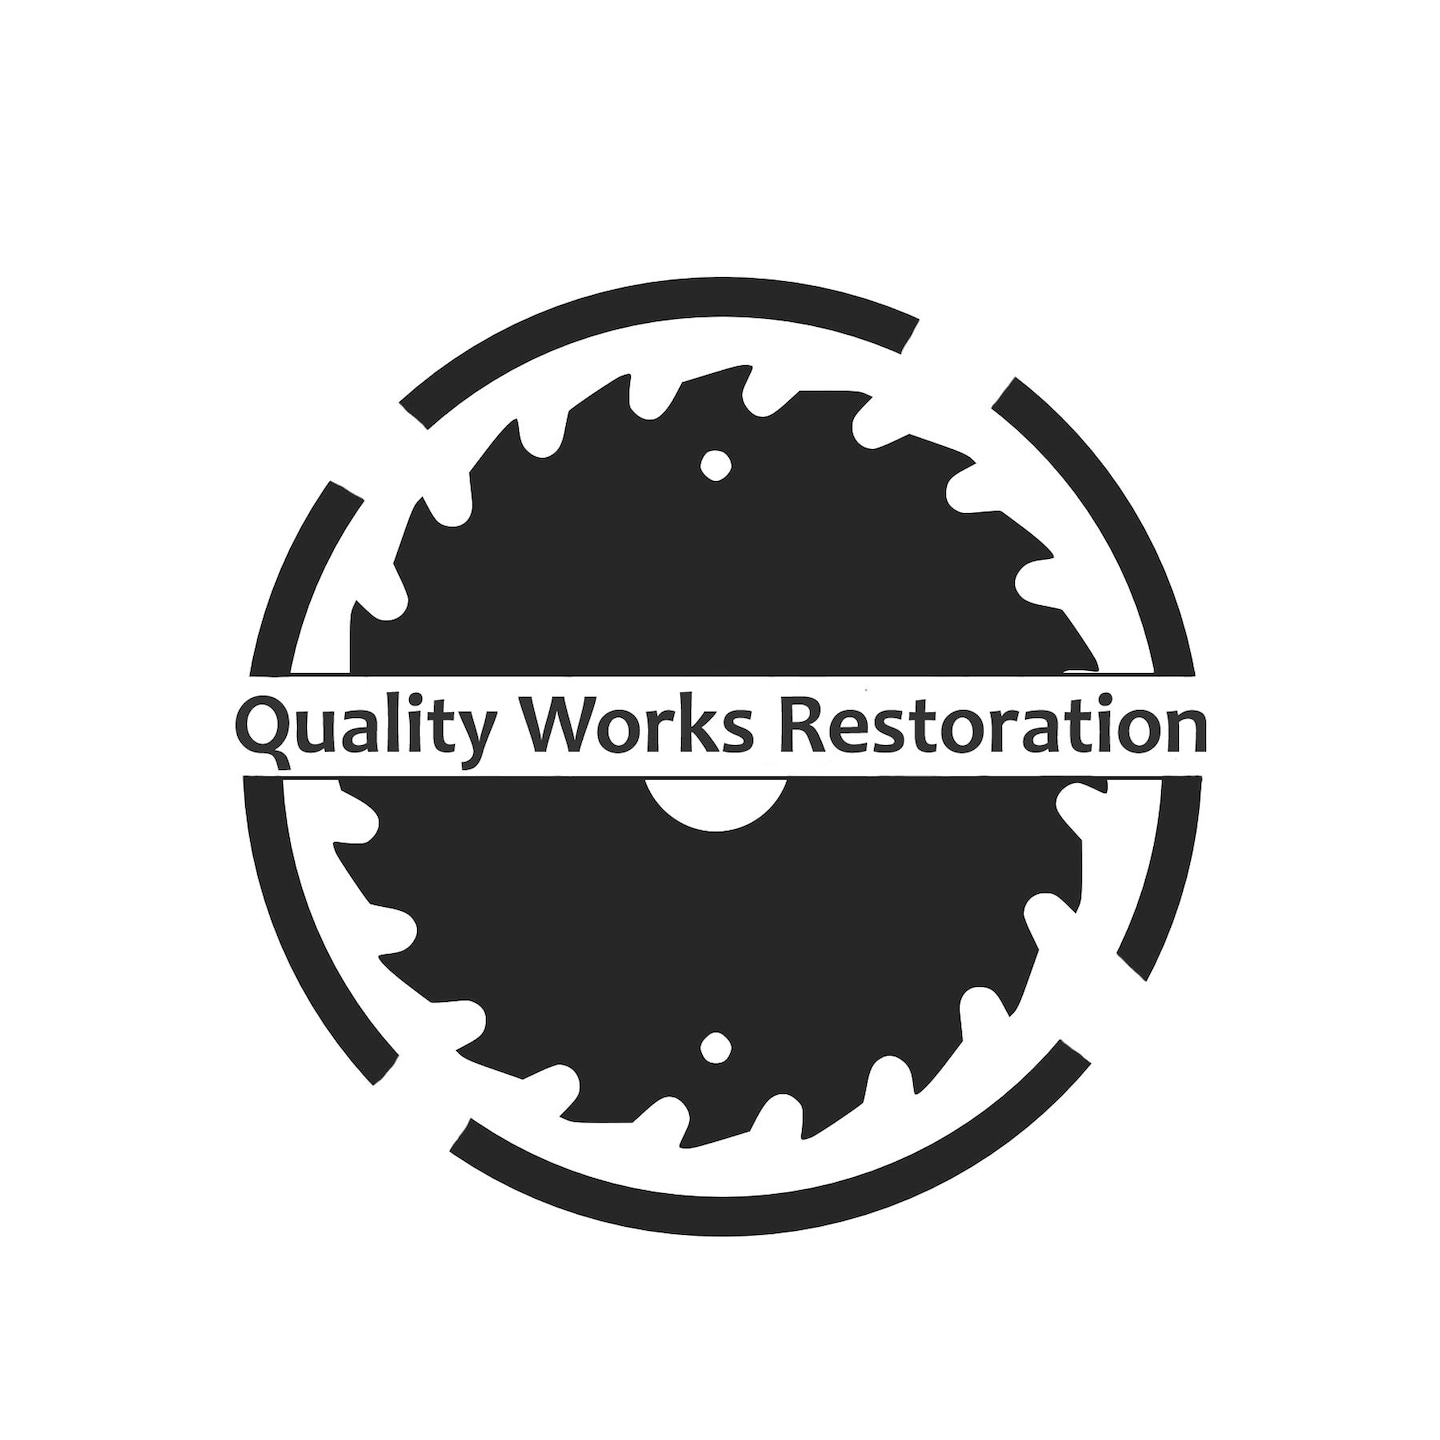 Quality Works Restoration